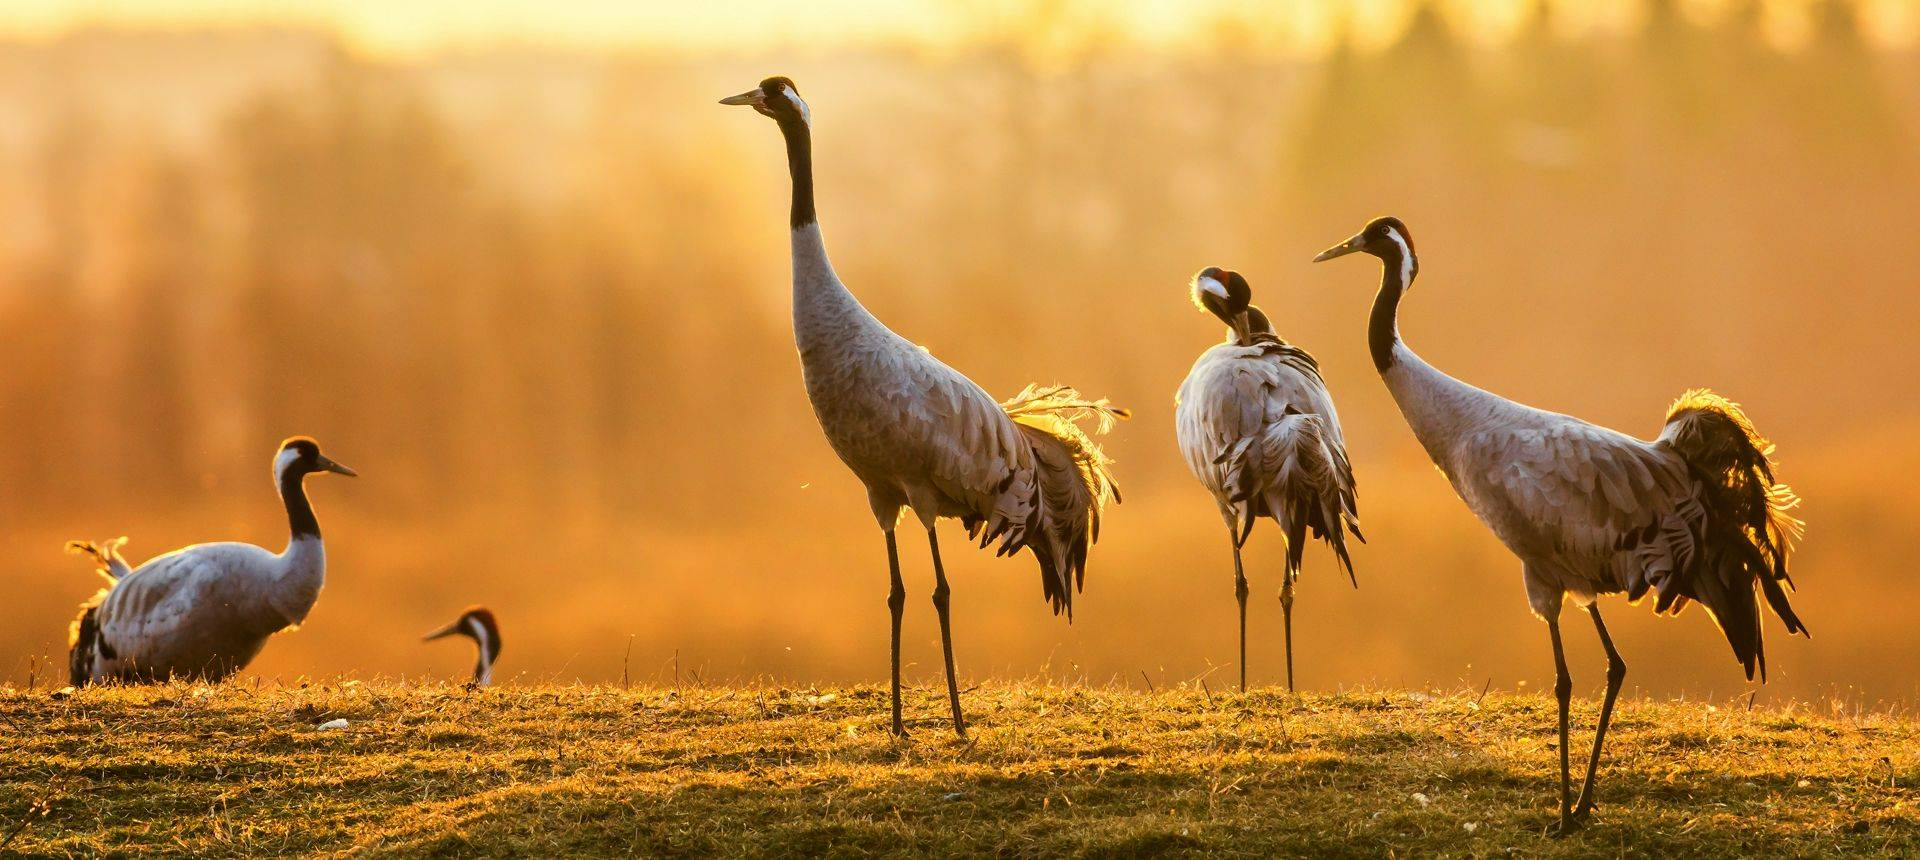 Common Crane. Shutterstock 184195787